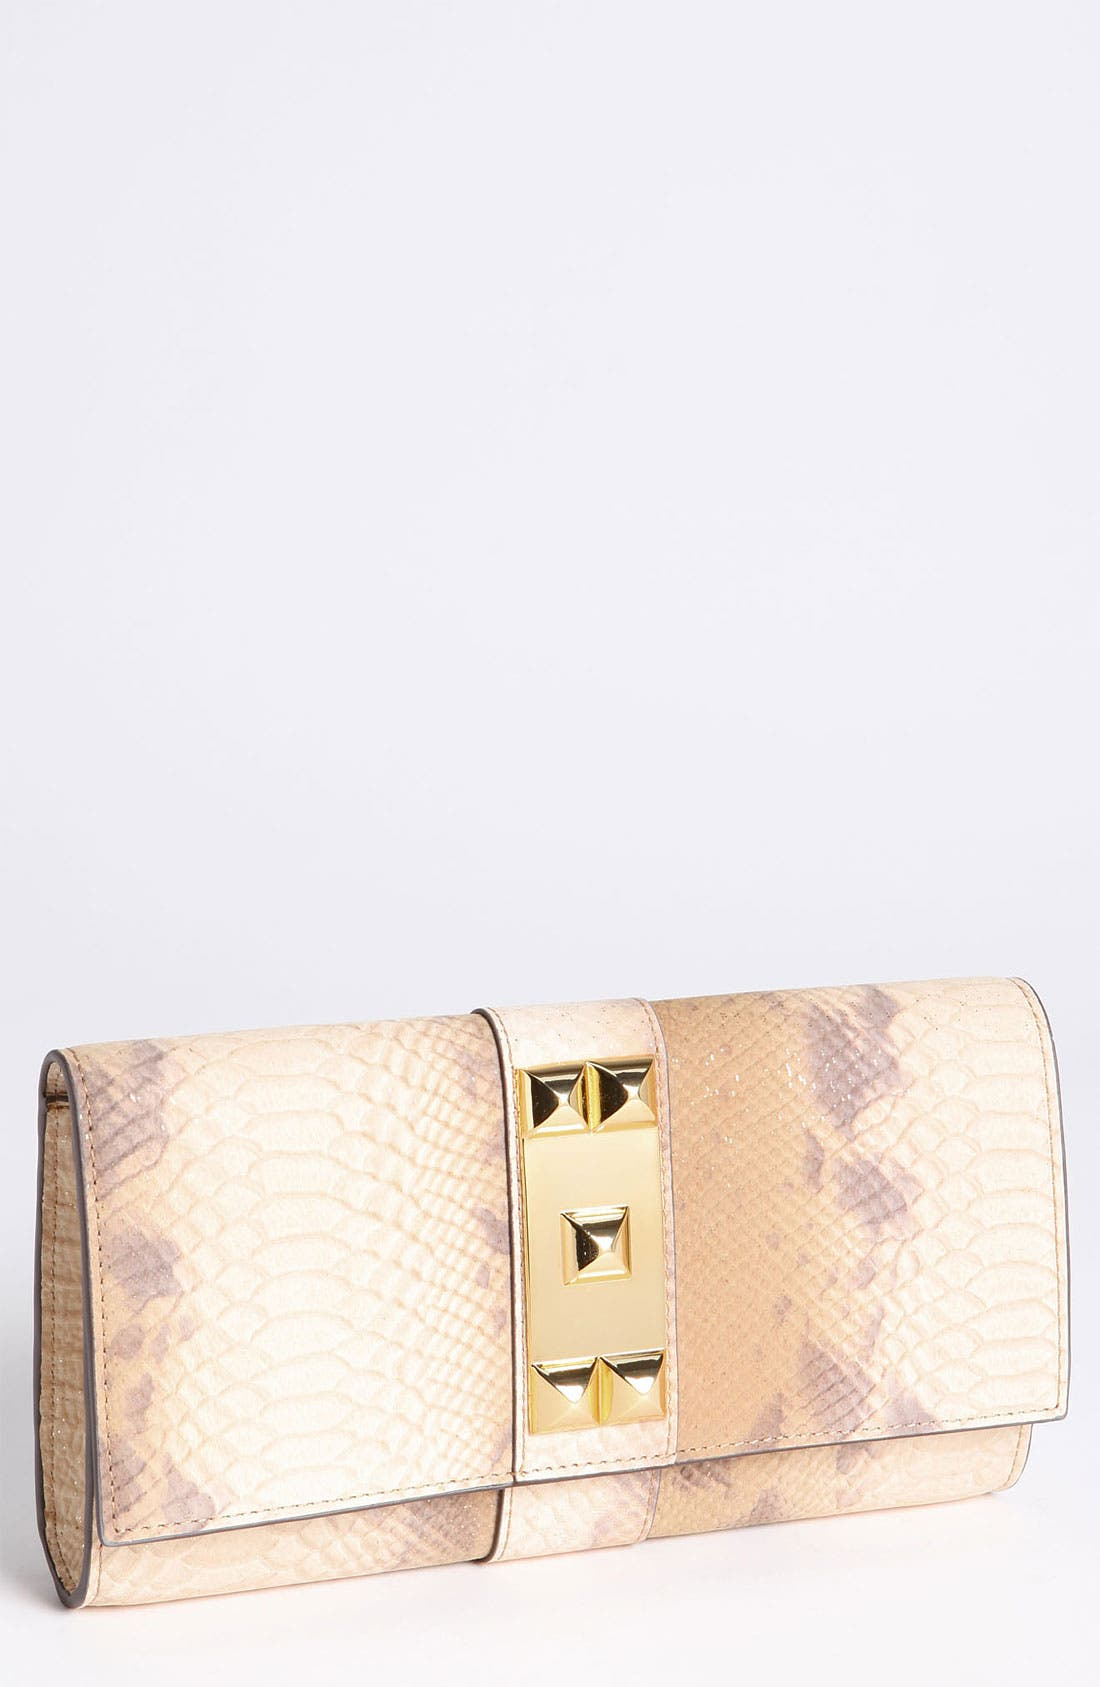 Alternate Image 1 Selected - Vince Camuto 'Louise' Clutch